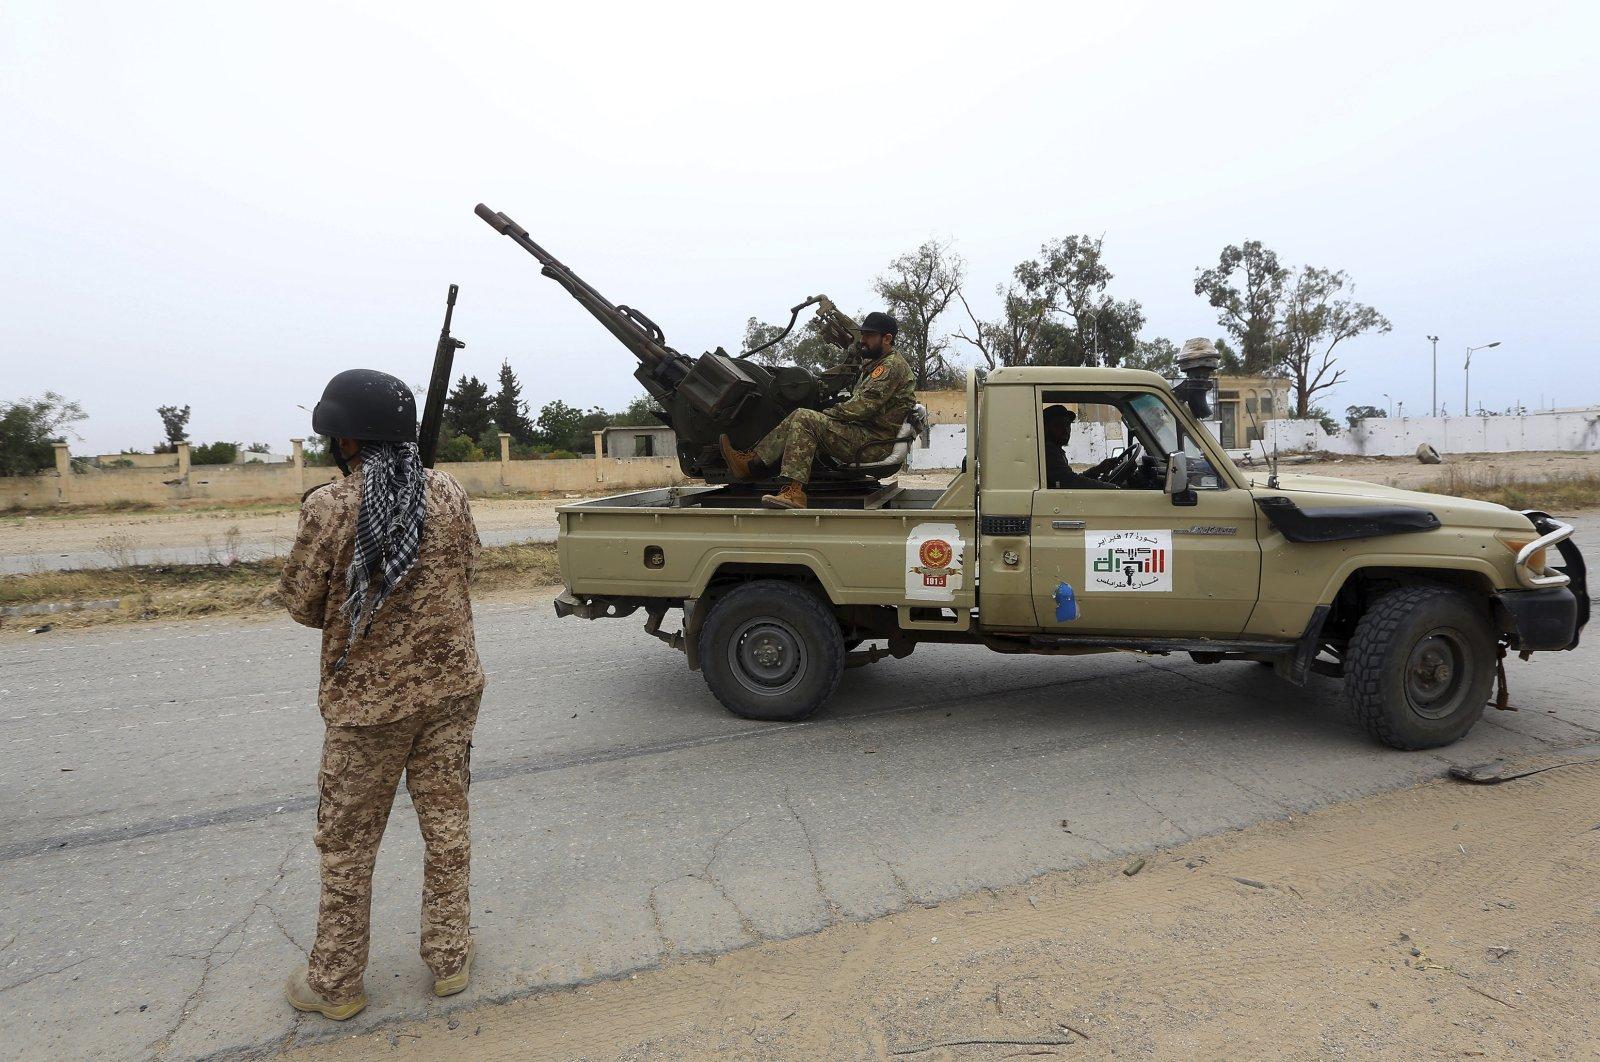 Tripoli-based legitimate government forces are seen during clashes with illegitimate forces led by putschist Gen. Khalifa Haftar, south of the capital Tripoli, Libya, May 21, 2019. (AP Photo)